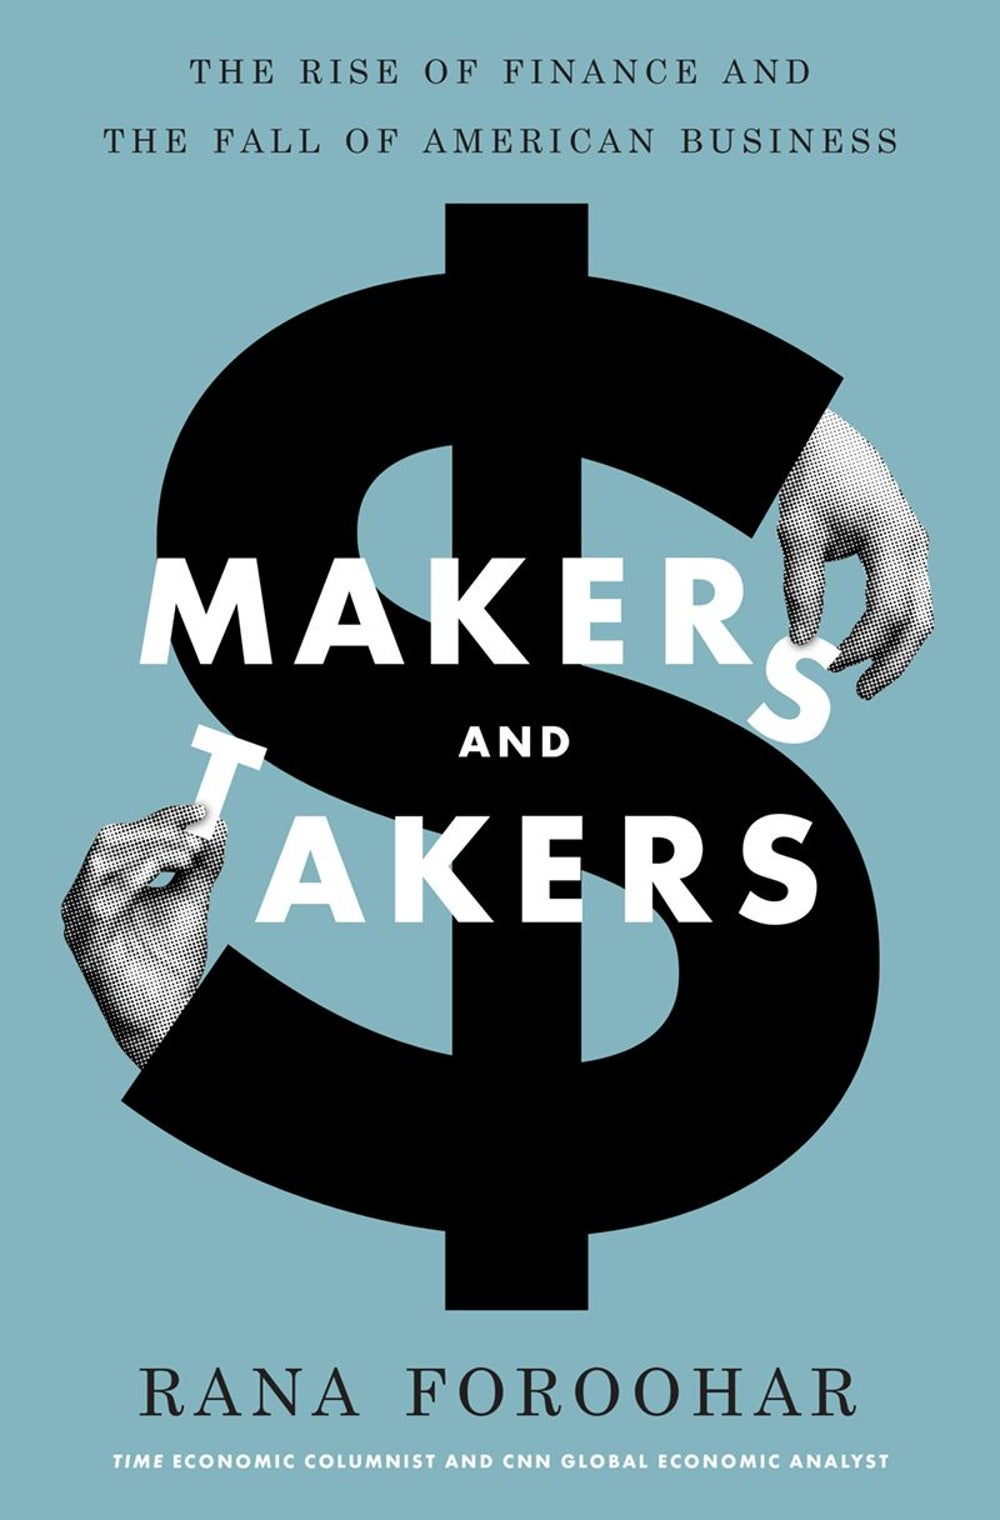 Associate Editor Lydia Belanger -- 'Makers and Takers: The Rise of Finance and the Fall of American Business' by Rana Foroohar